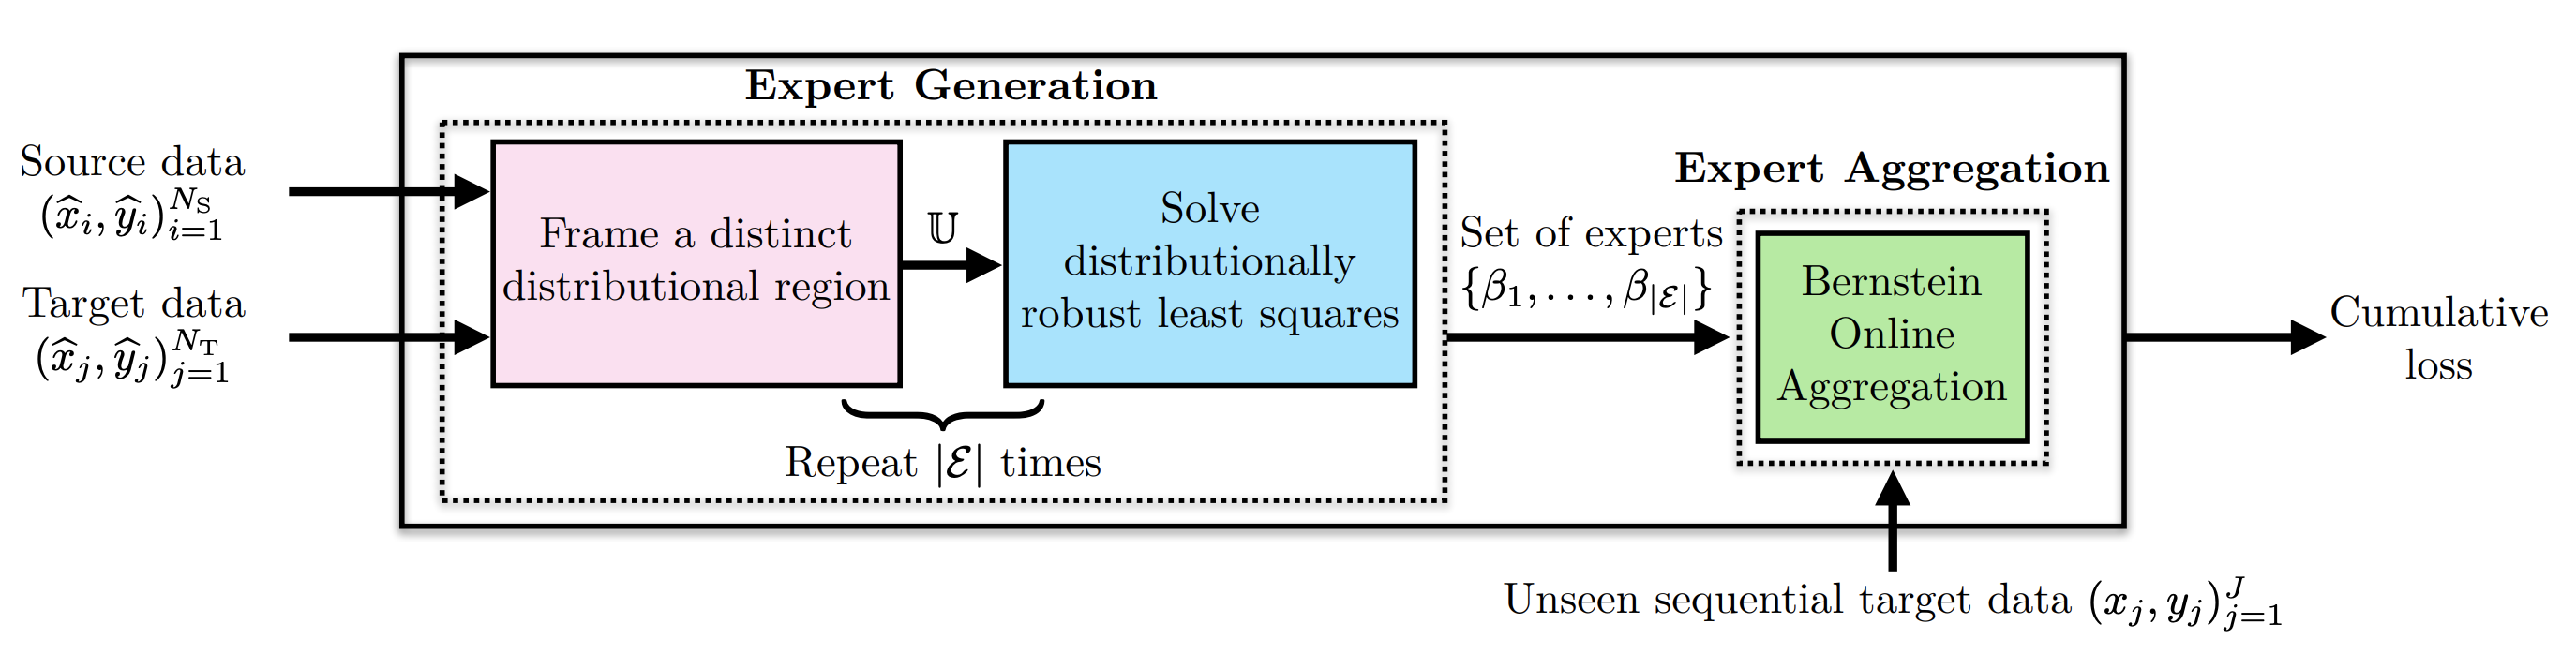 Sequential Domain Adaptation by Synthesizing Distributionally Robust Experts